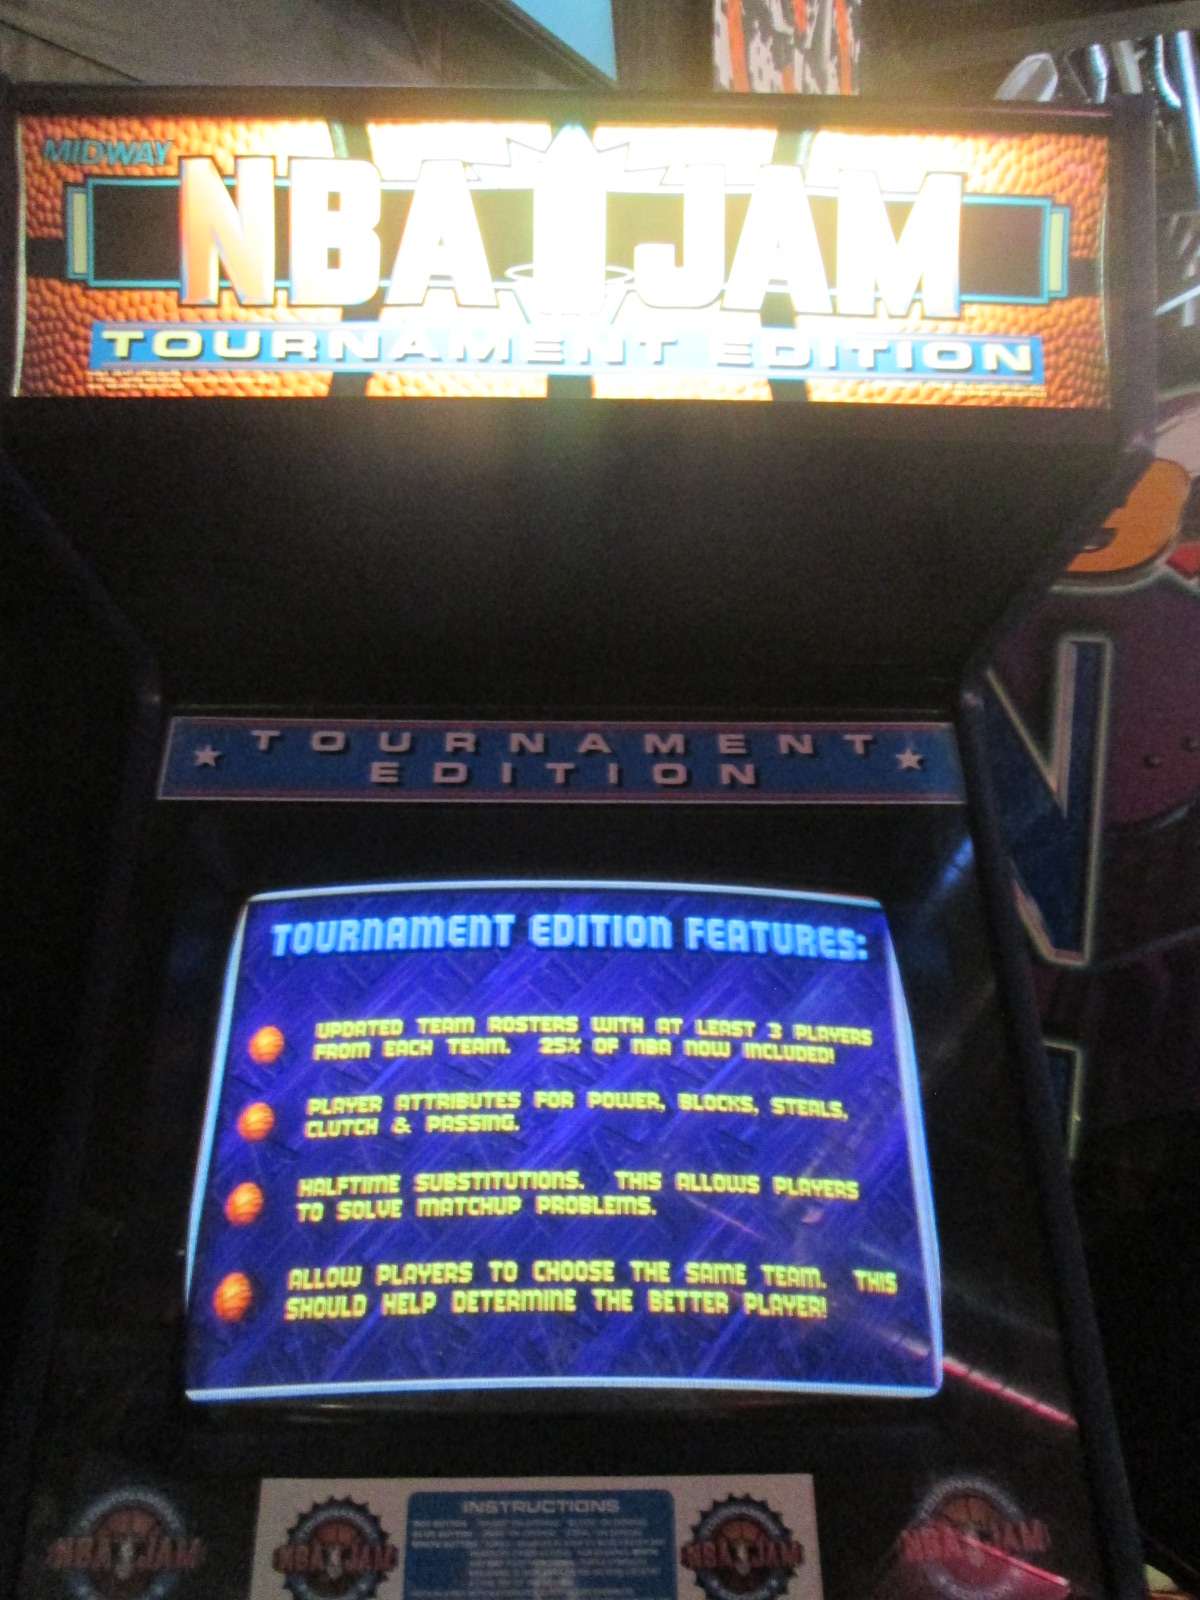 ed1475: NBA Jam: Tournament Edition  [Point Difference] (Arcade) -5 points on 2016-09-18 15:27:56